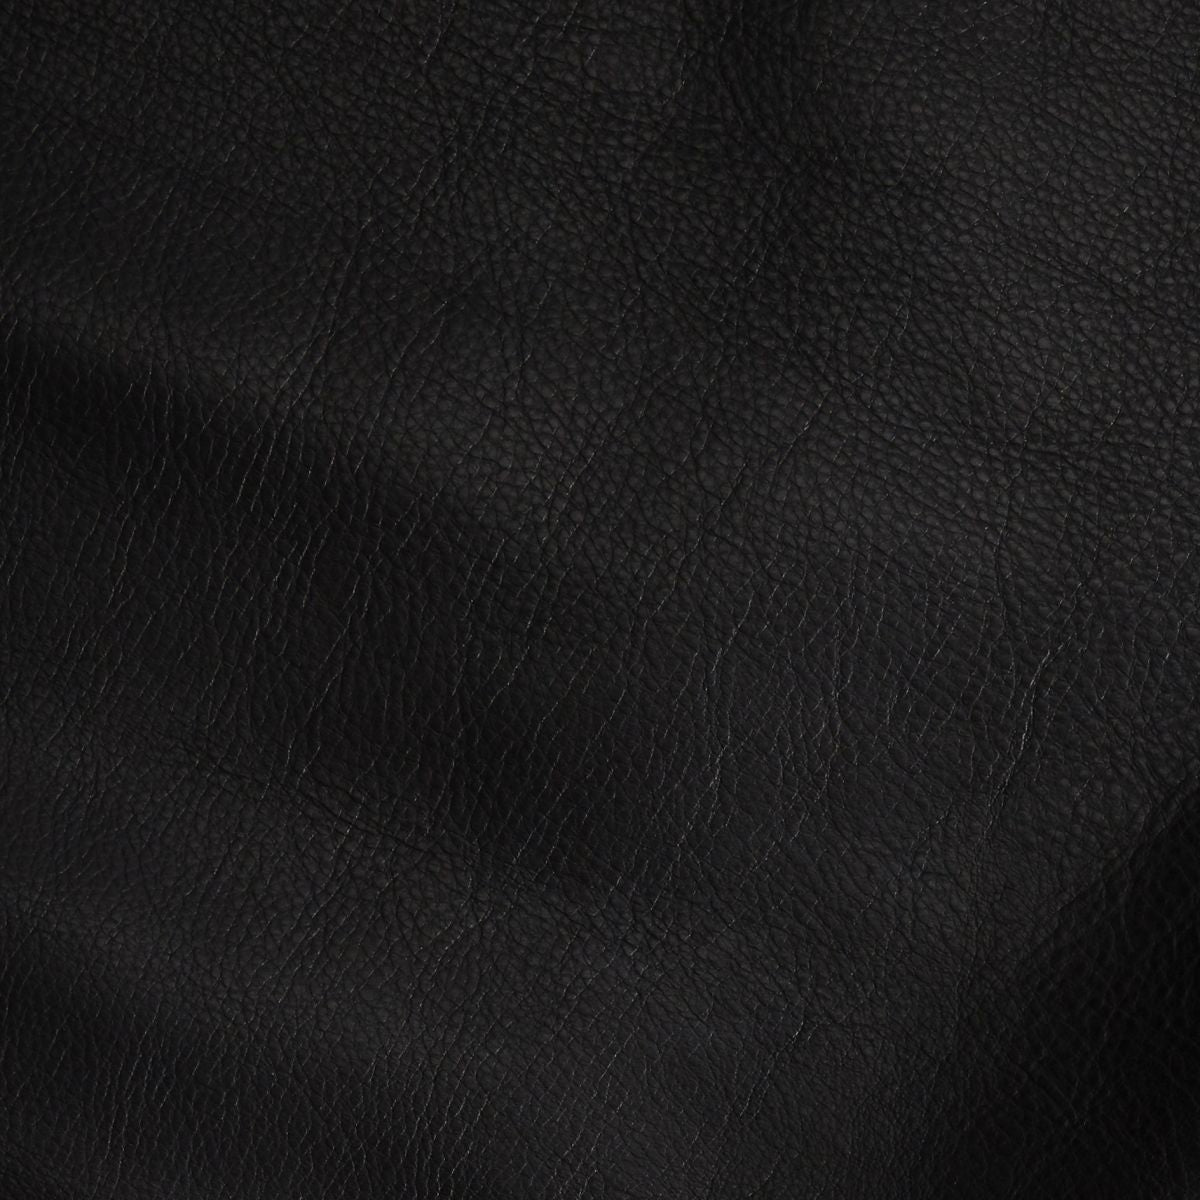 Laredo Side - Floater Grain Black